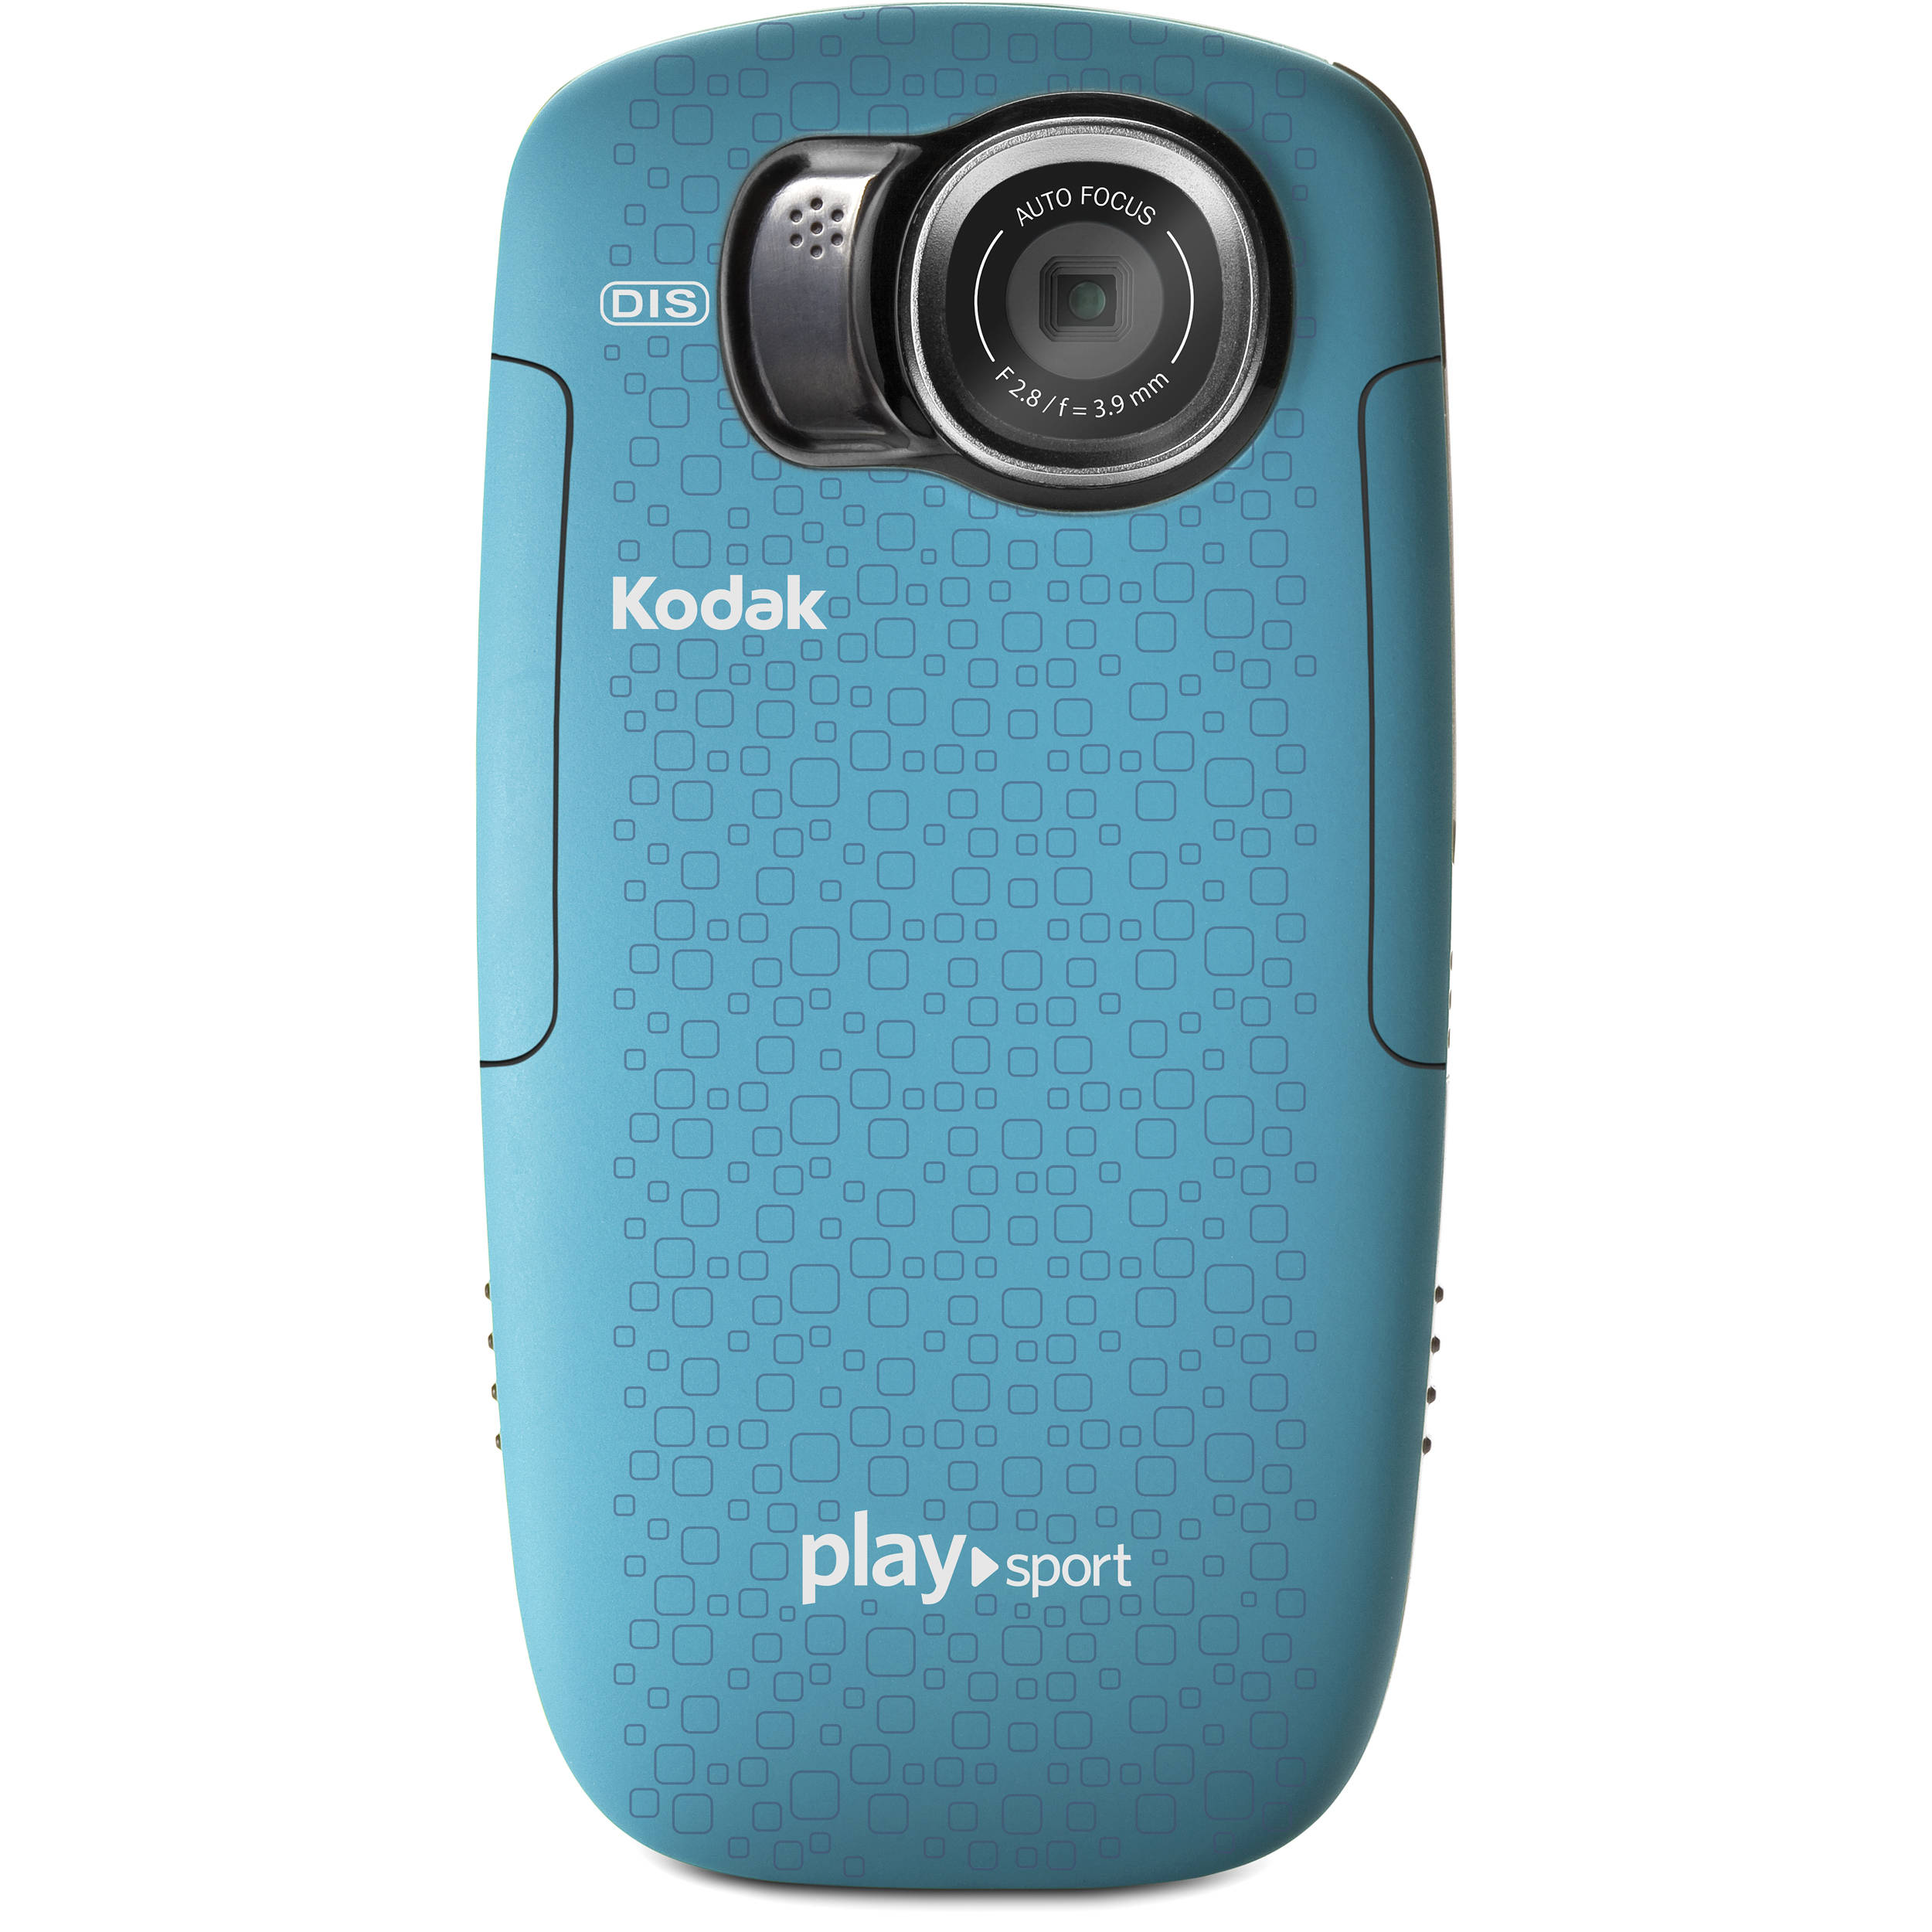 kodak playsport zx5 video camera aqua 1191857 b h photo video rh bhphotovideo com Kodak Waterproof Camcorder Kodak Digital Camera Battery